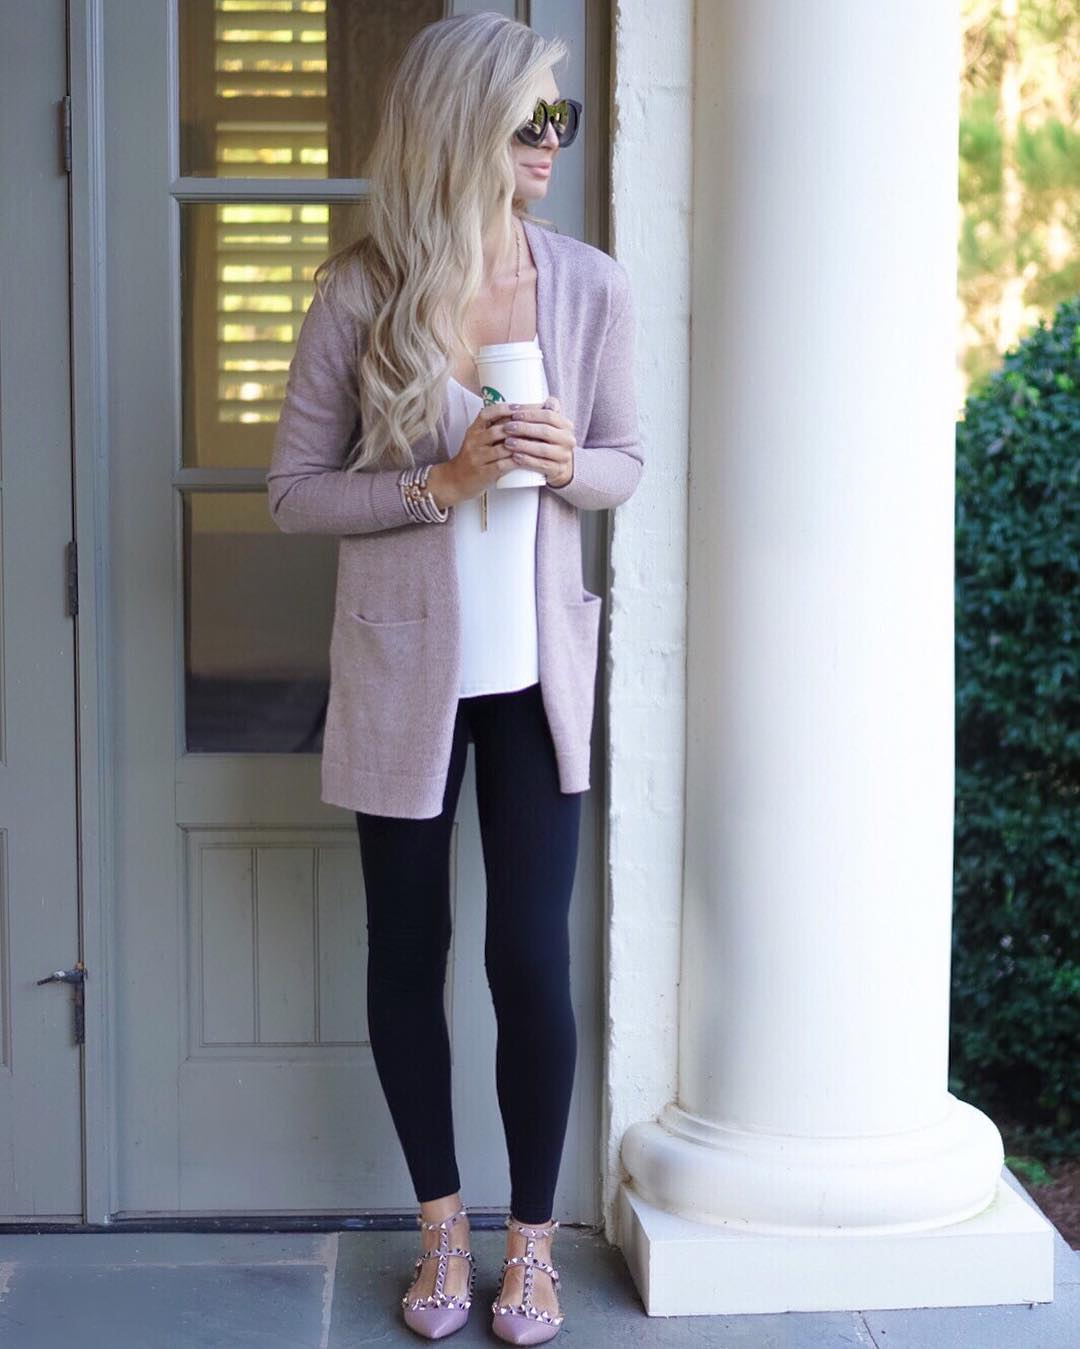 Some mornings a comfy sweater and fancy shoes are the only things keeping me going...and of course multiple cups of coffee!! ☕️ #coffeeismybff http://liketk.it/2ppO4 #fall #fallfashion #ootd #wiw #liketkit #liketkitunder50